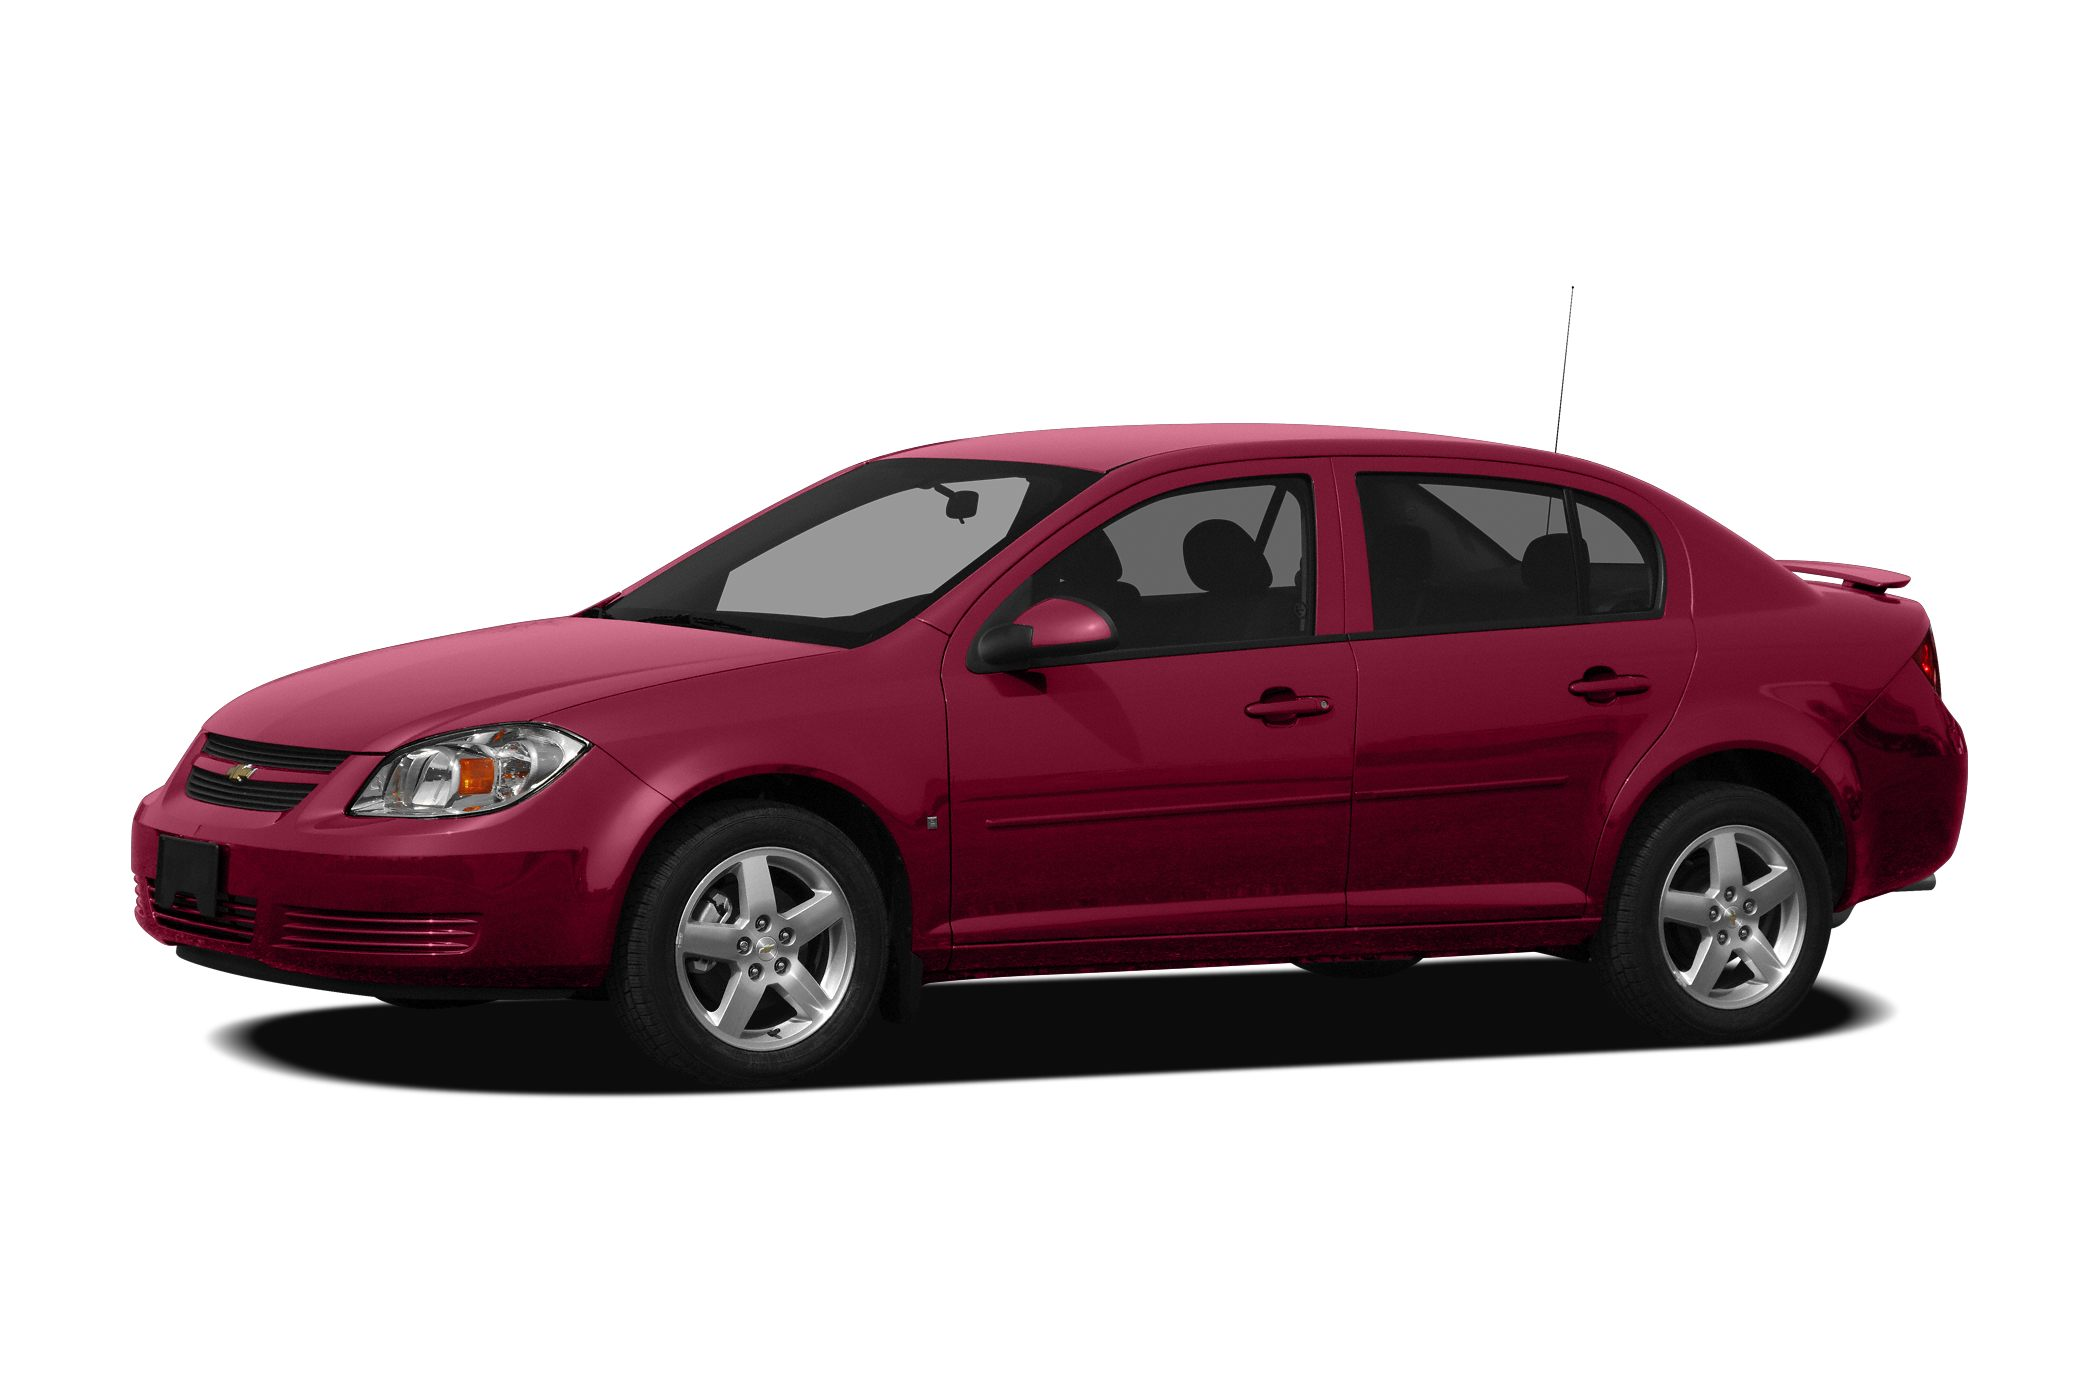 2009 Chevrolet Cobalt LT  ONE PRICE STOP NO HASSLE NO HAGGLE CAR BUYING EXPERIENCE  Mi